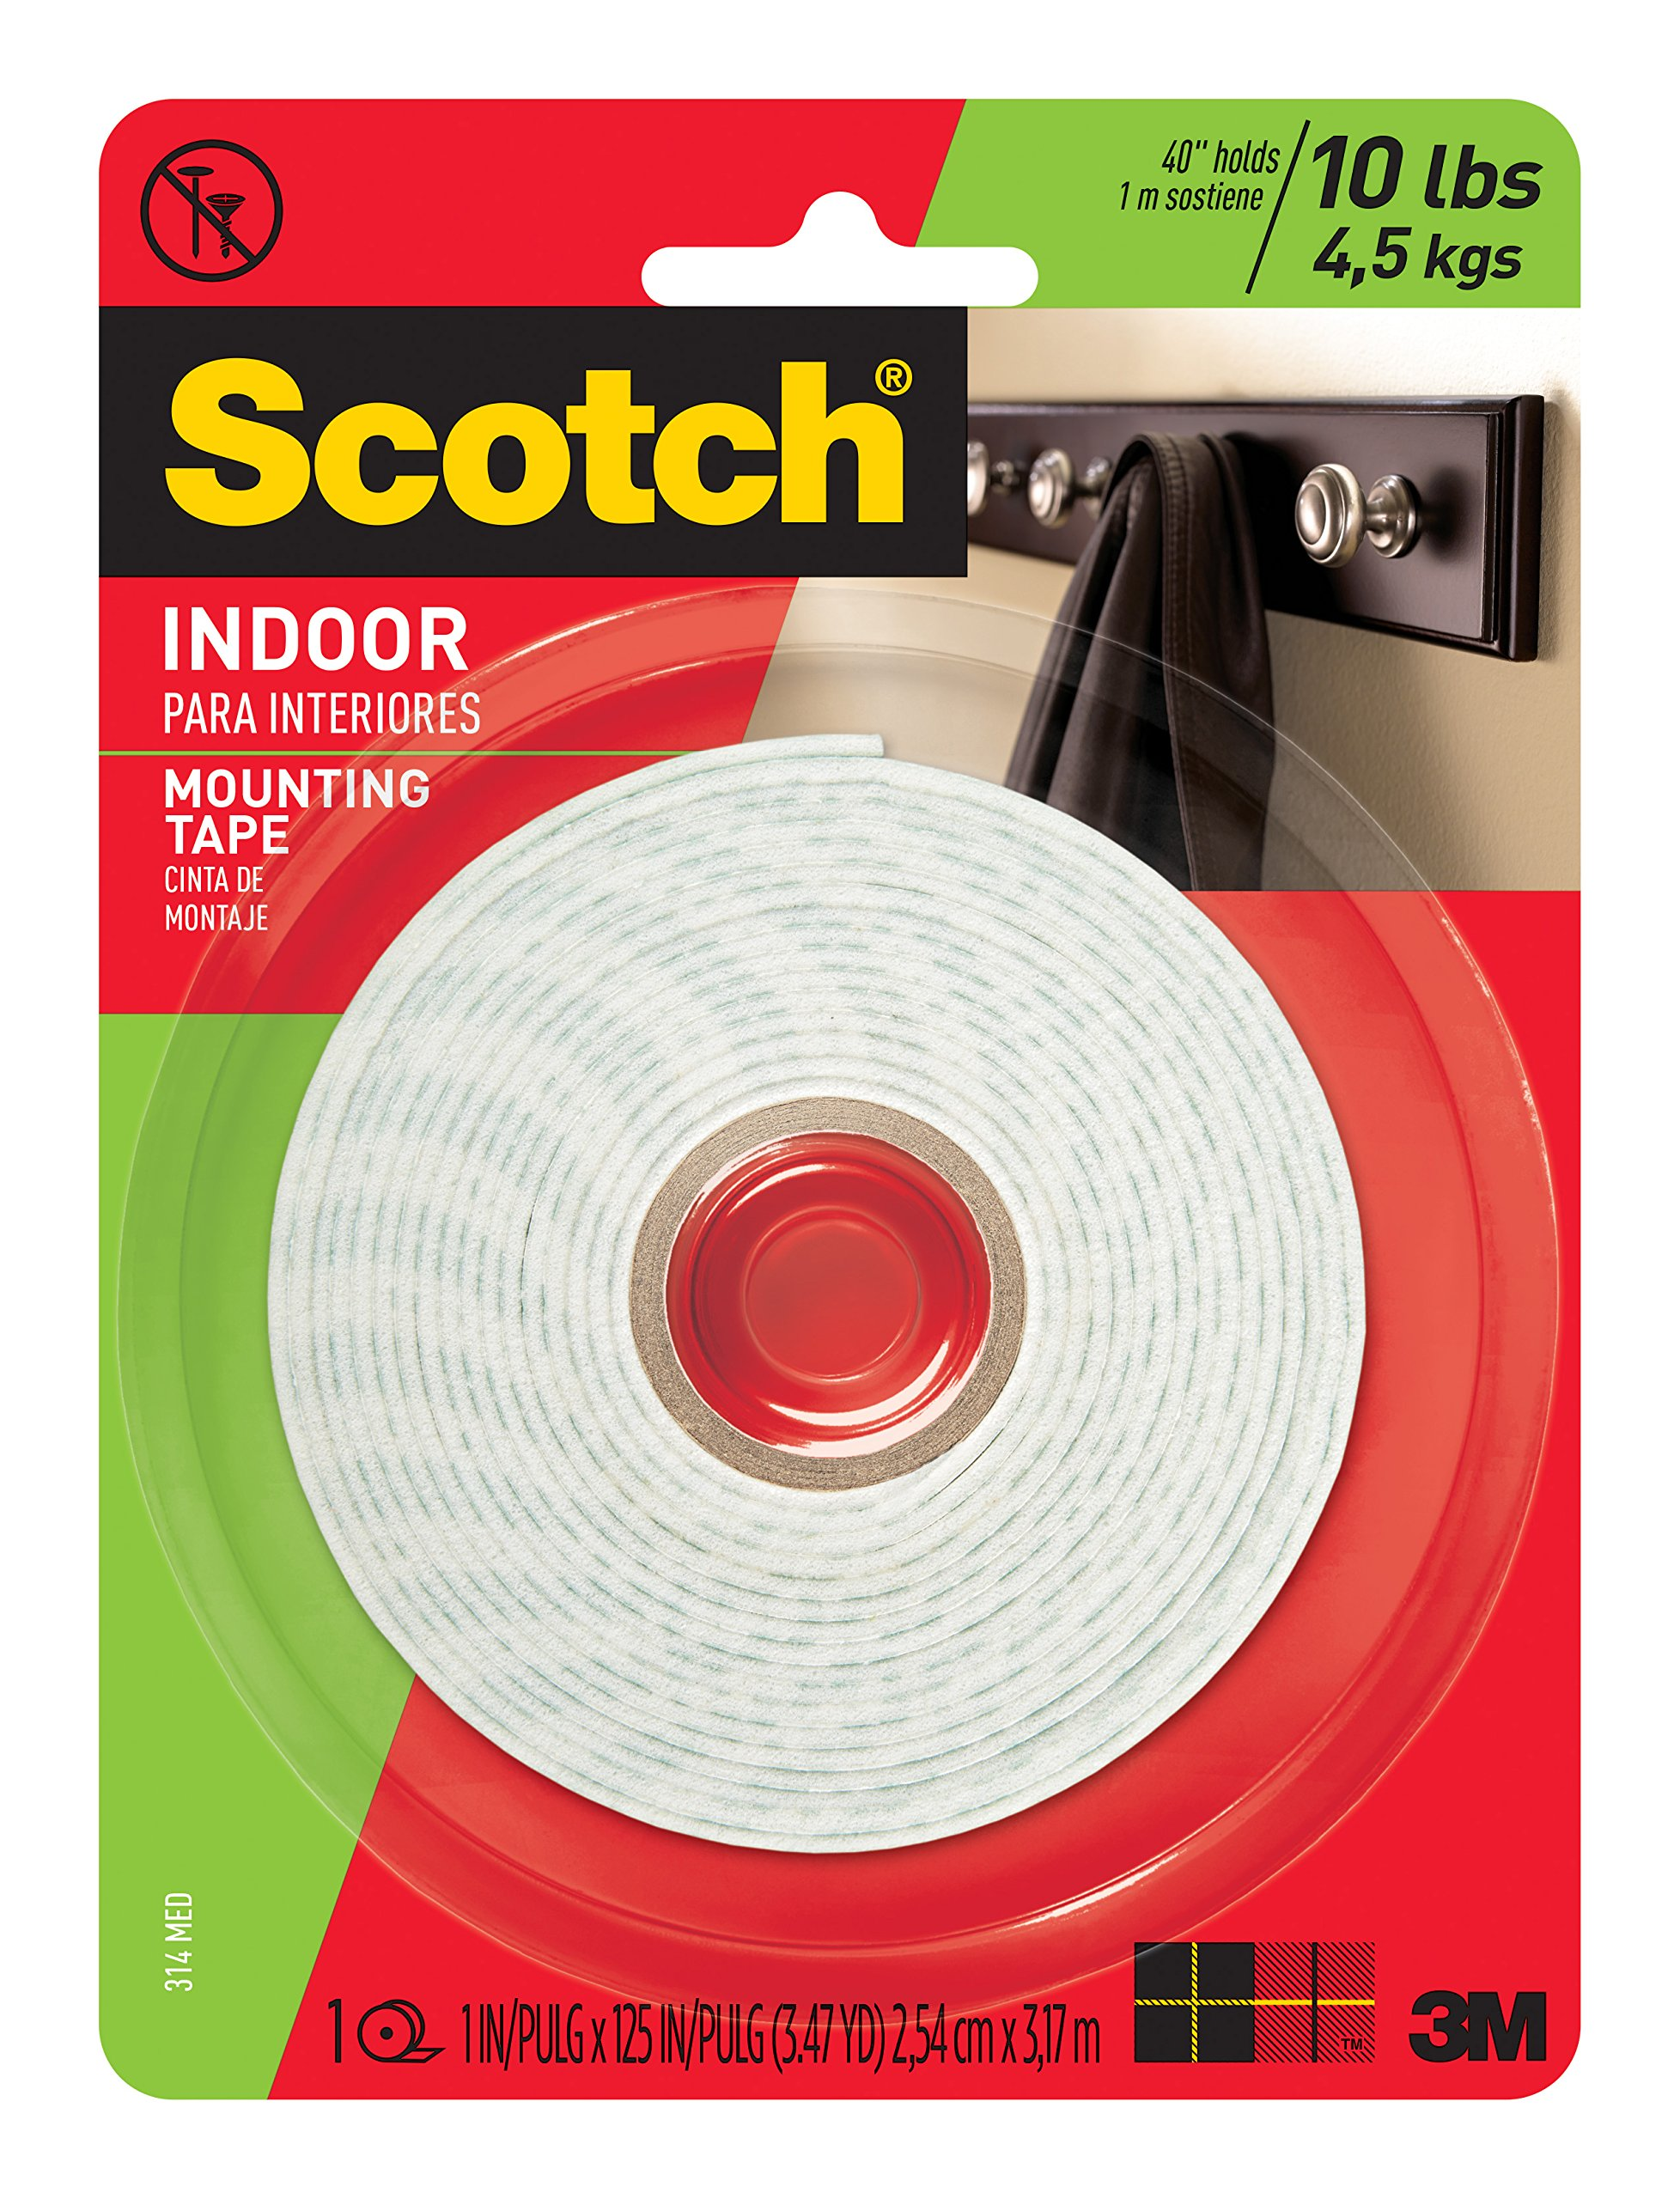 Scotch Mounting, Fastening & Surface Protection 314 783961045463 Scotch Indoor Mounting Tape, 1-Inch x 125-Inches, 1-Roll (314P), White